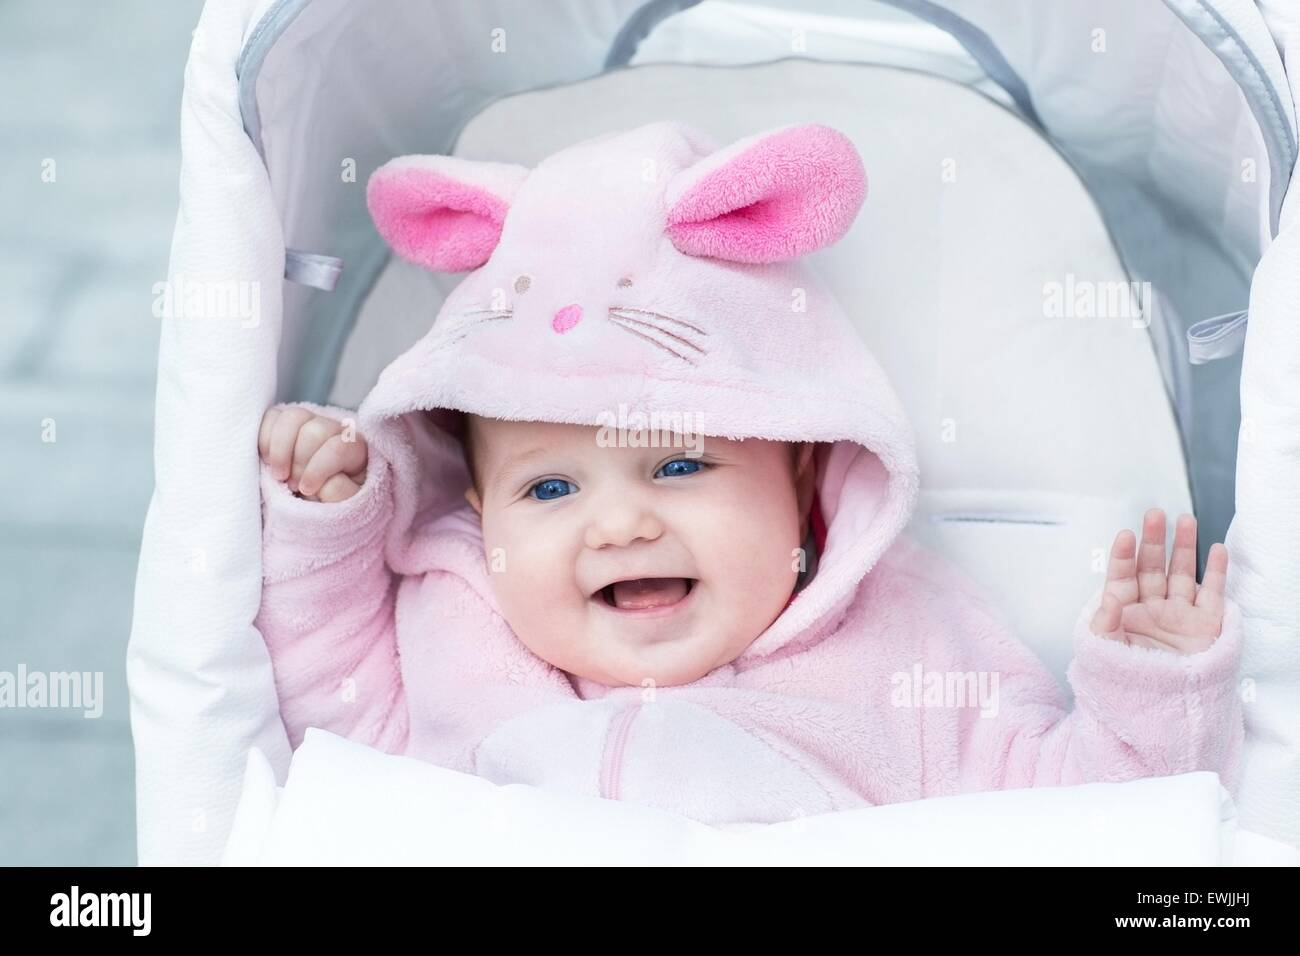 0c70d4901 Cute laughing baby girl enjoying a stroller ride on a cold winter day  wearing a warm